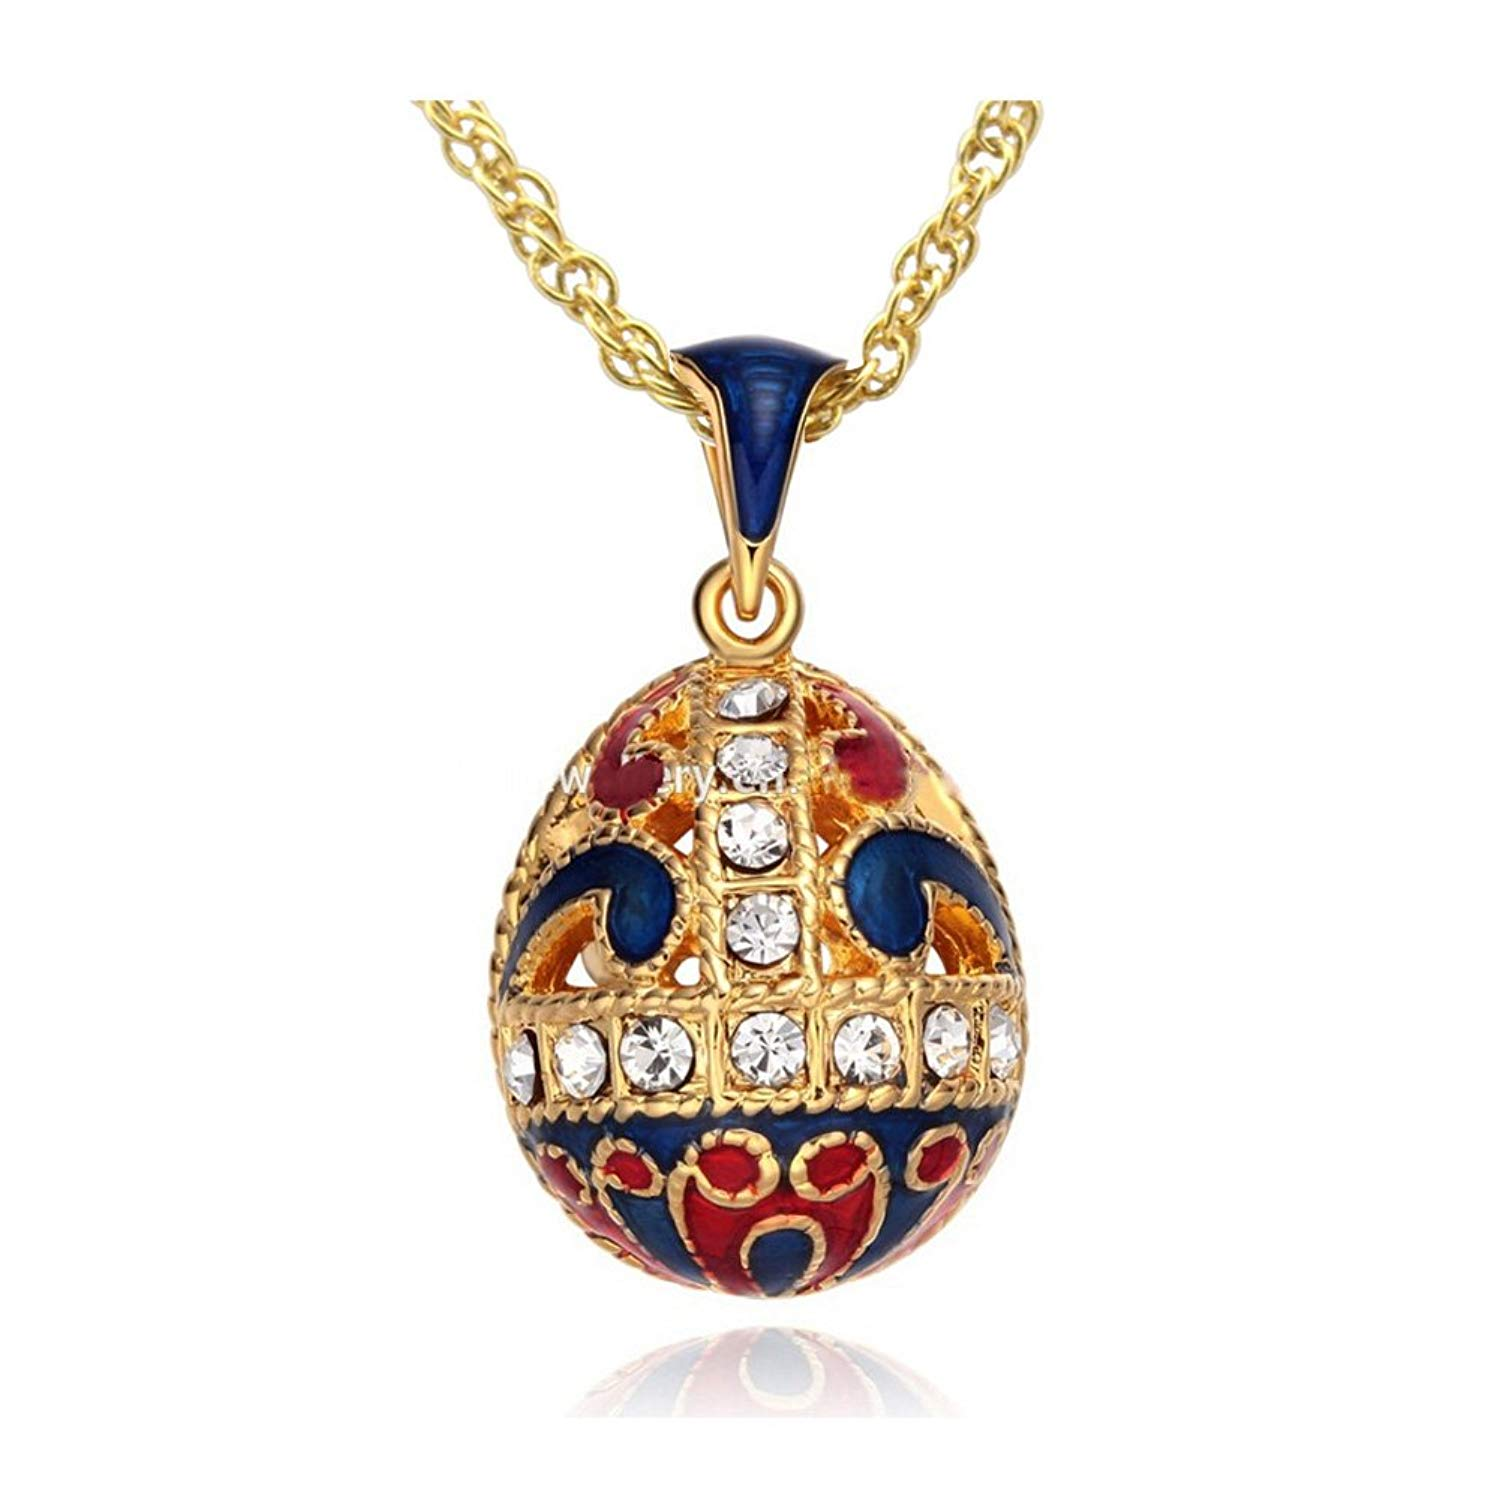 MYD Jewelry Enamel Hollow Flower Easter Egg Faberge Egg Pendant Necklace